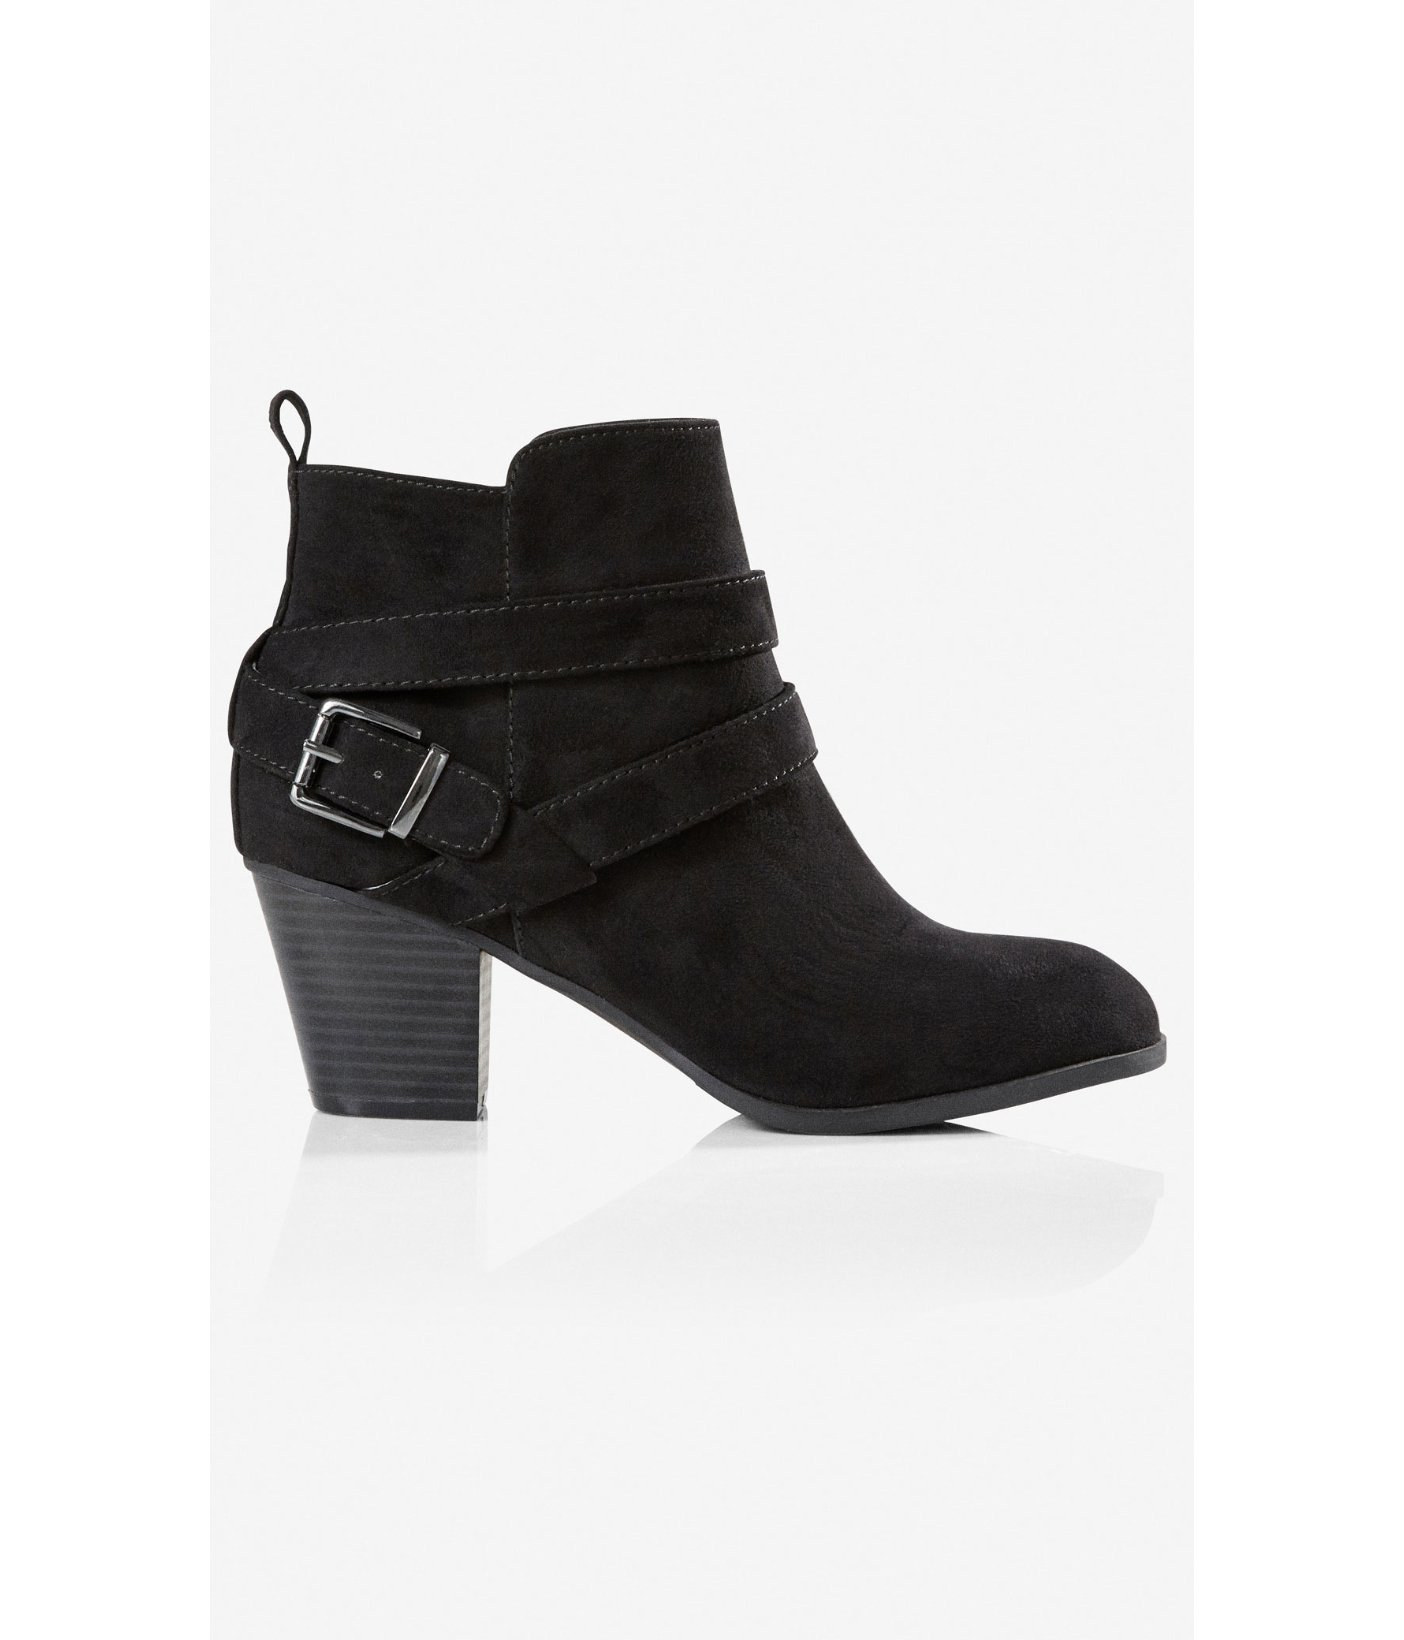 express zip up buckle ankle boot in black lyst